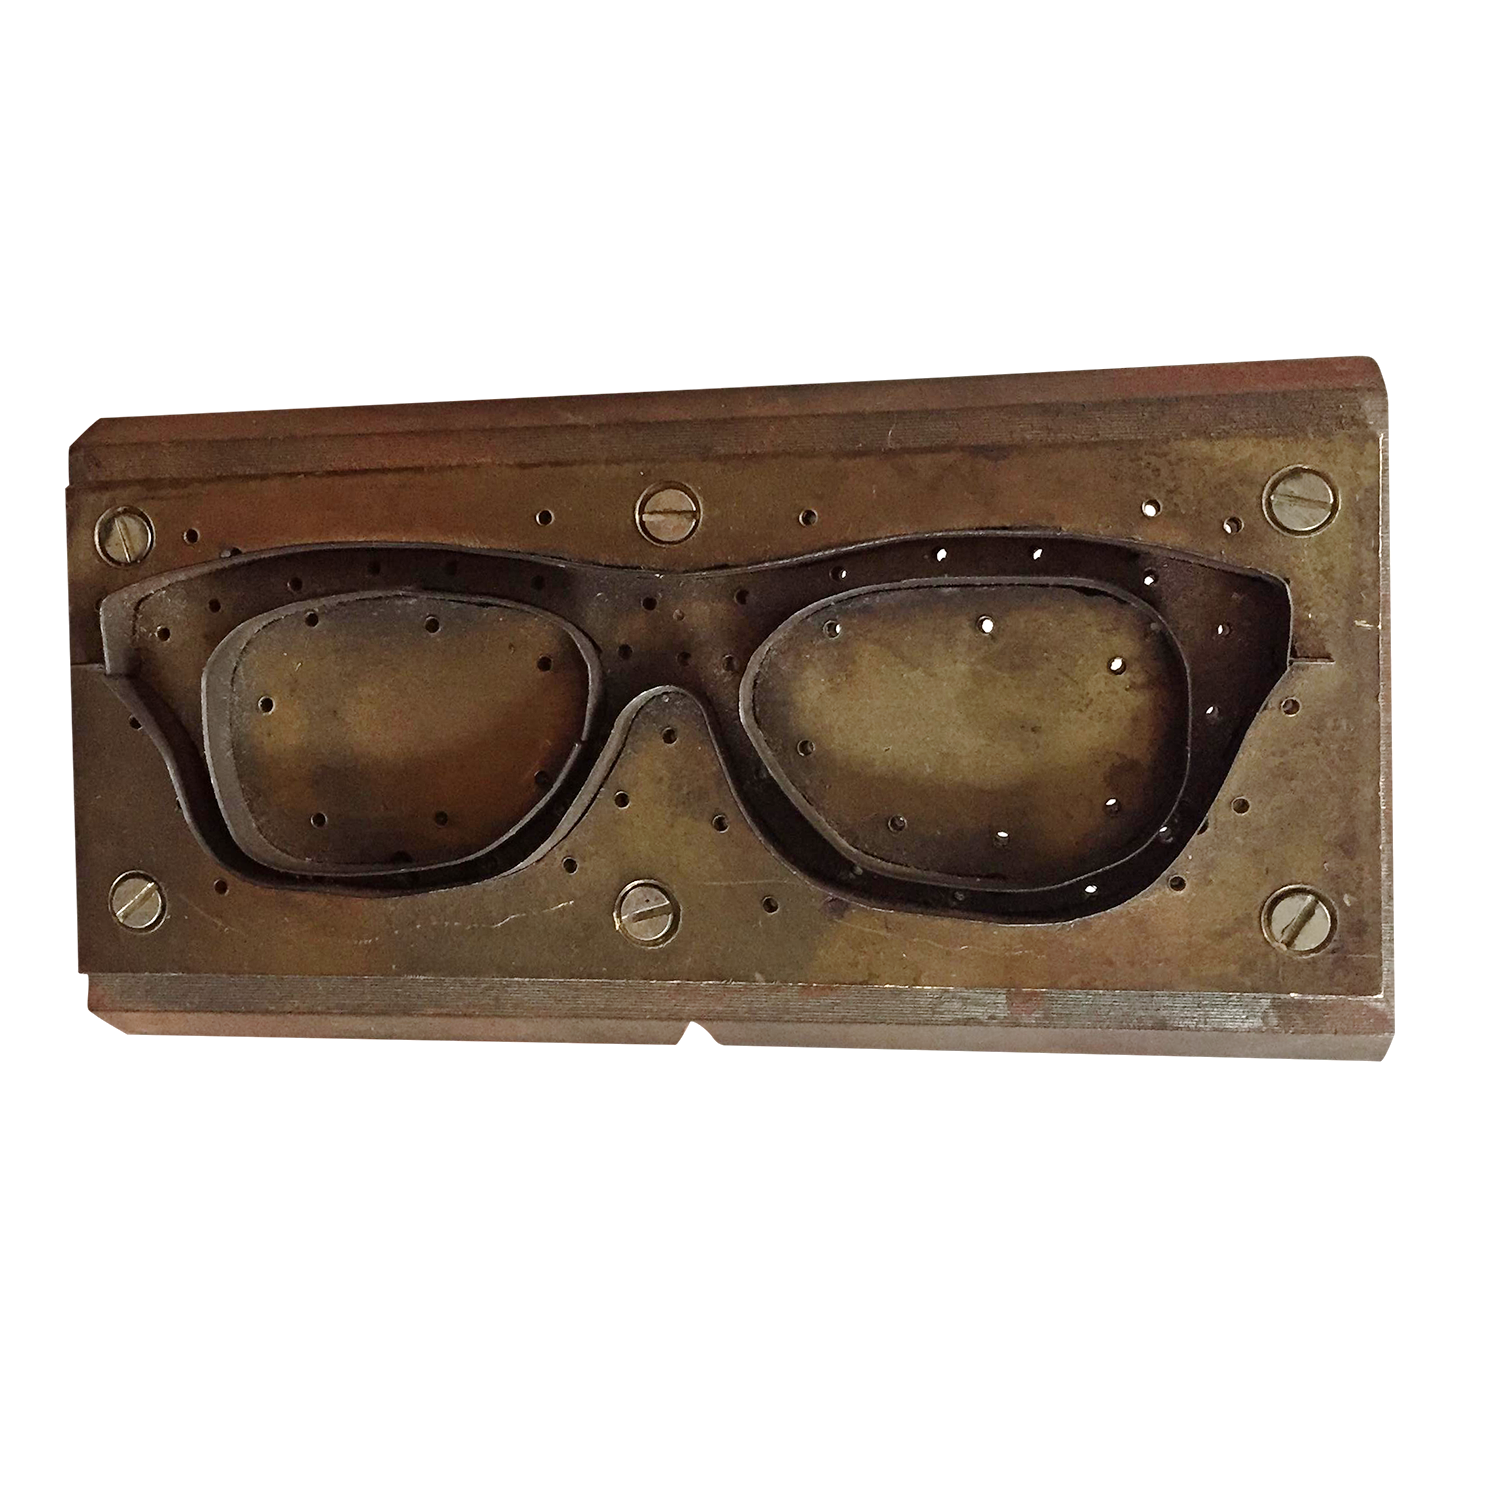 vintage industrial metal eyeglasses mold chairish